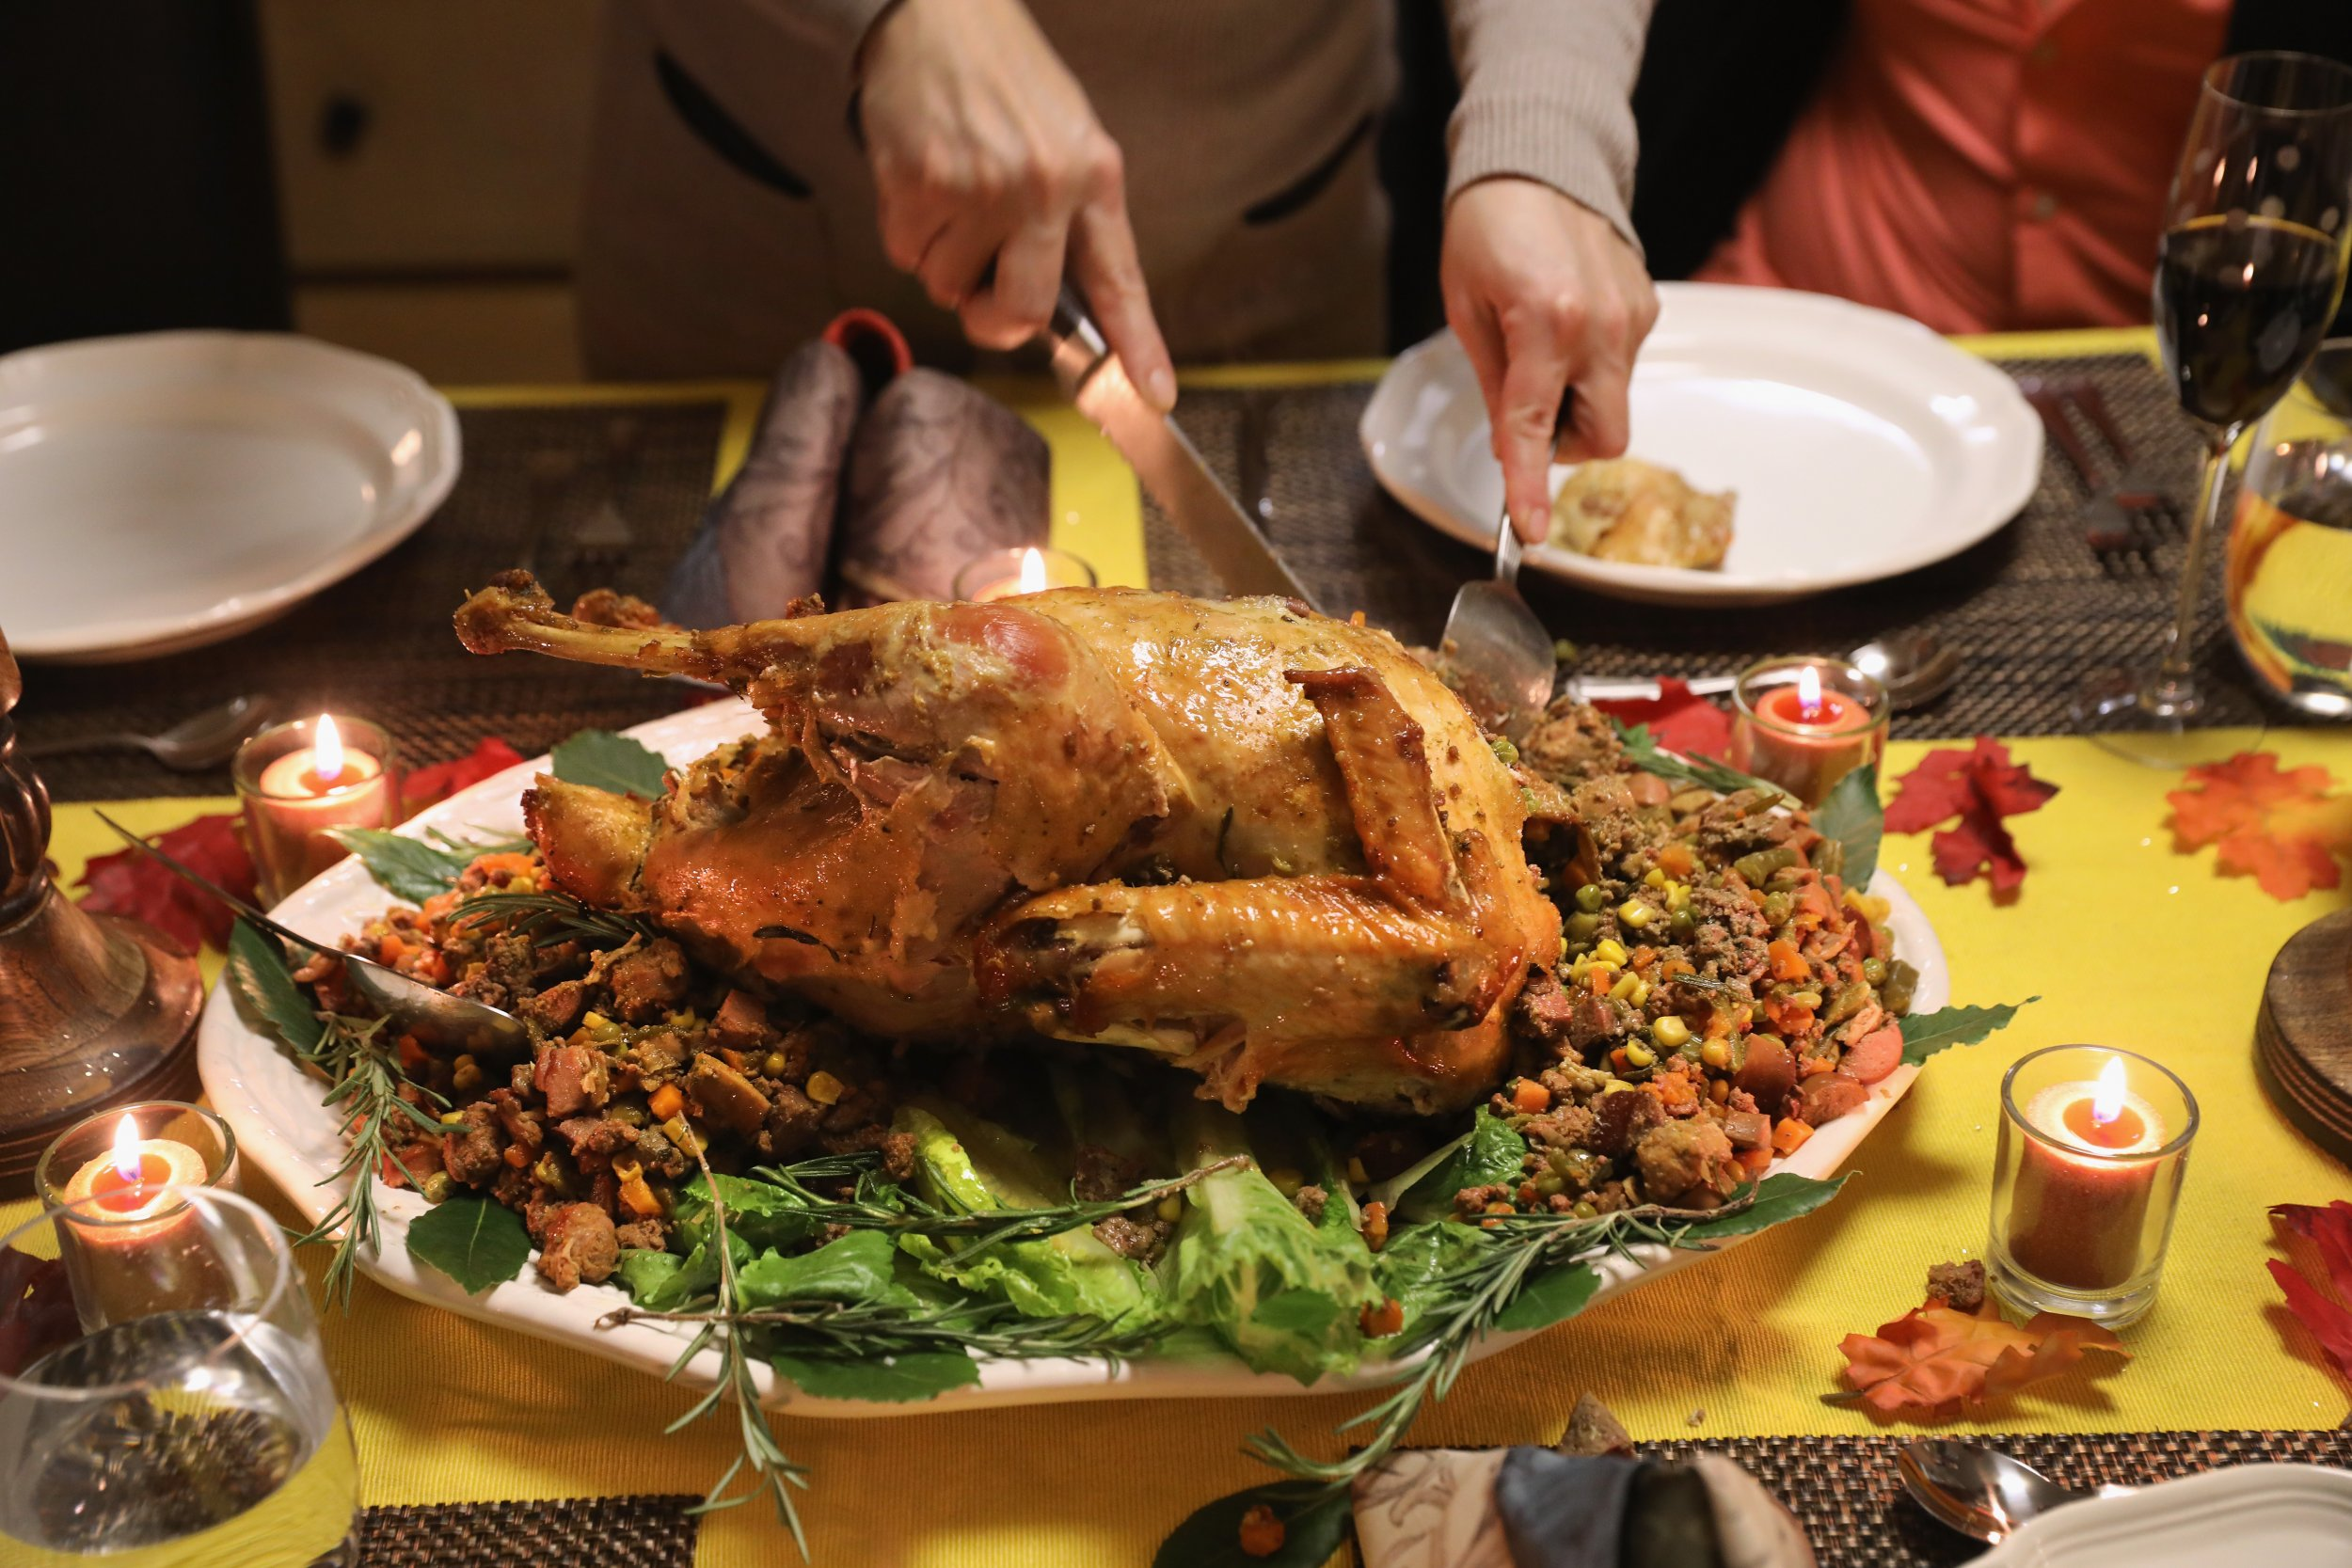 How To Cook The Perfect Turkey For Thanksgiving 5 Easy Steps And Time